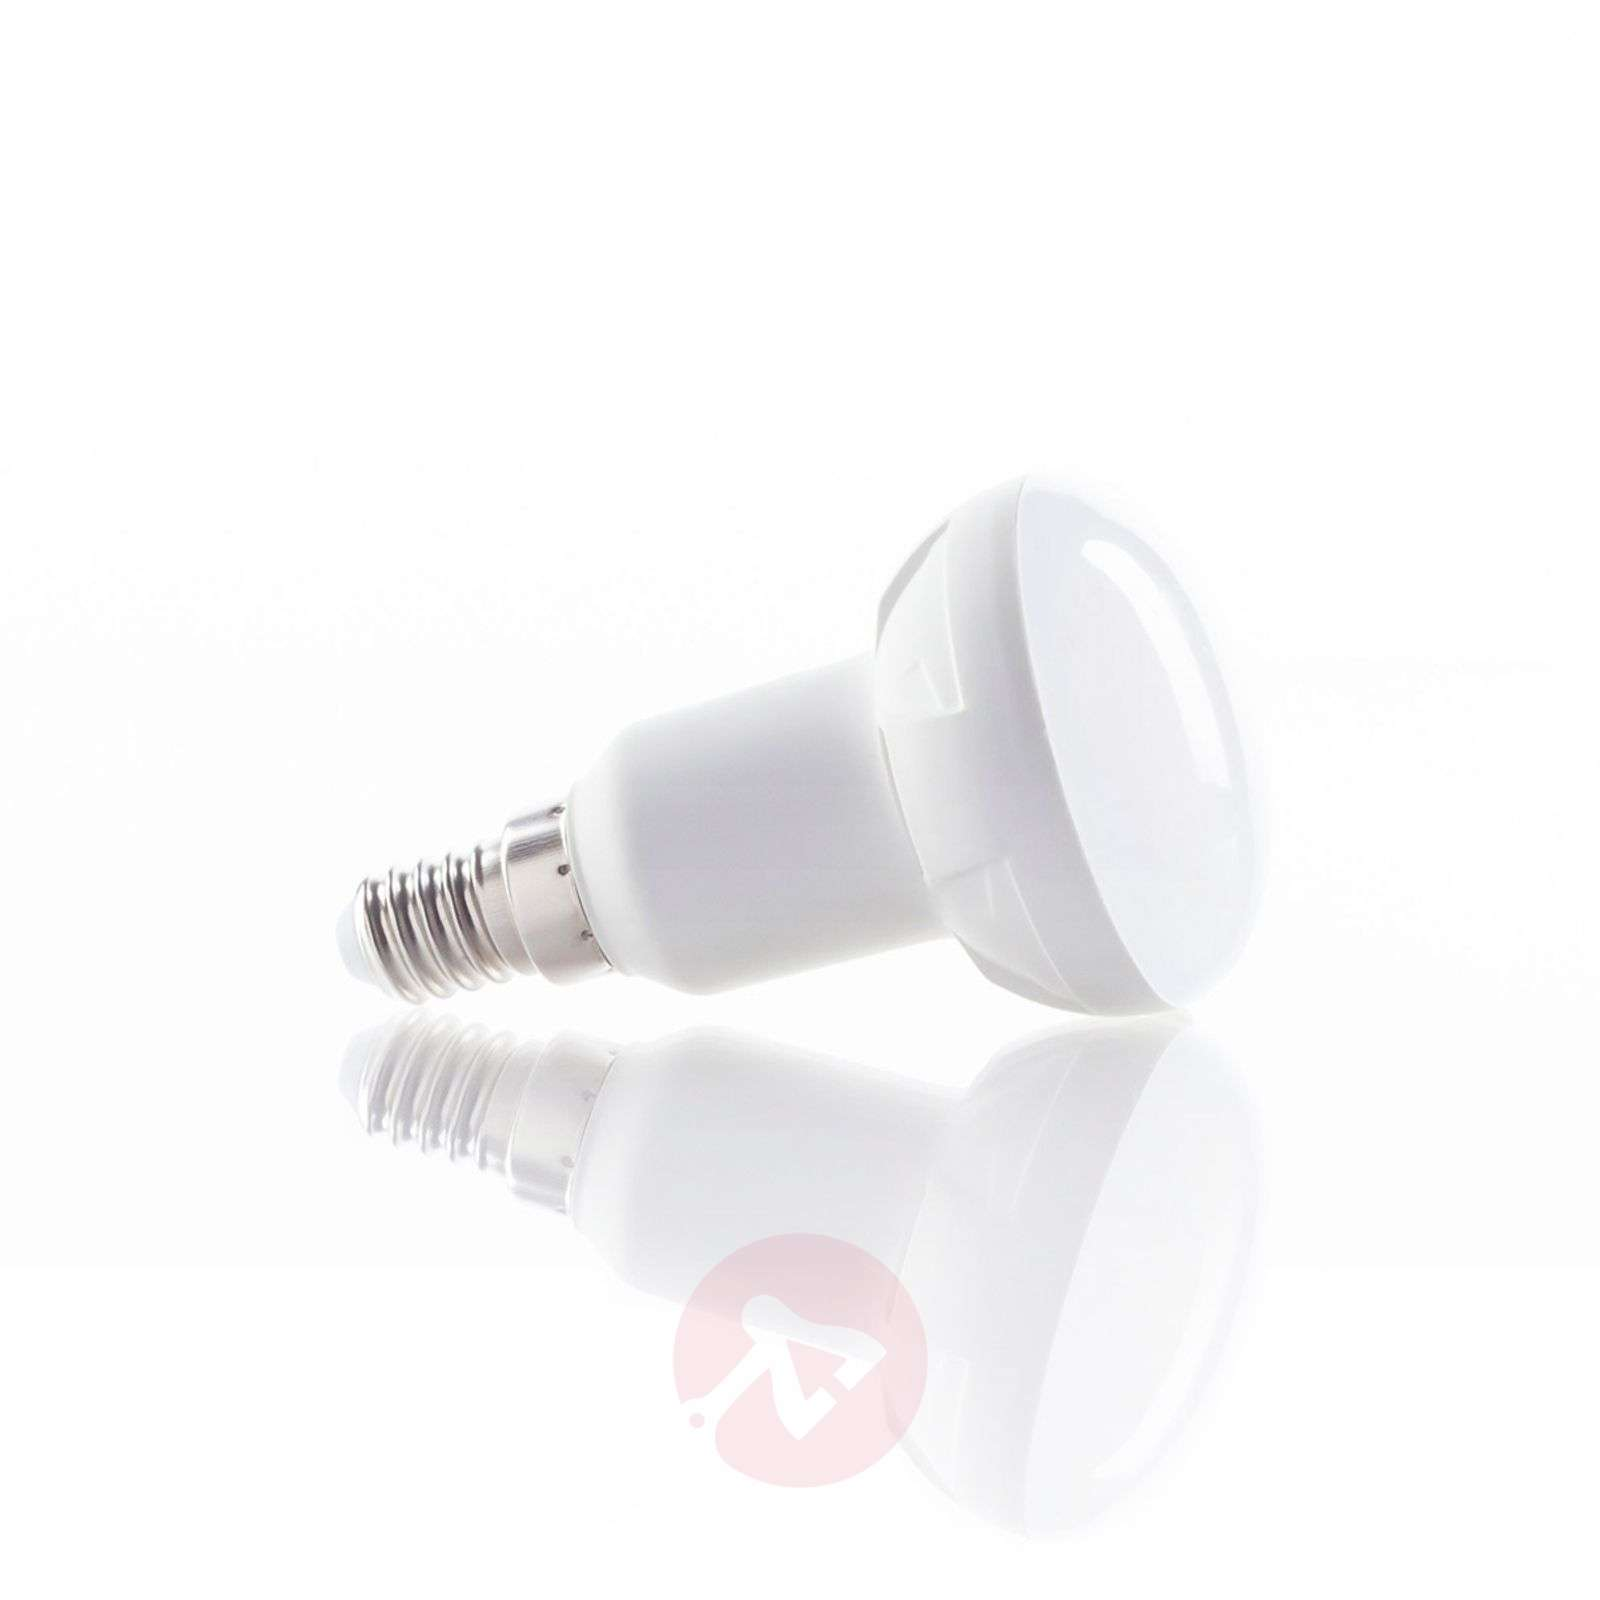 E14 7W 830 LED-reflectorlamp R50 warm-wit 120gr-9993005-02